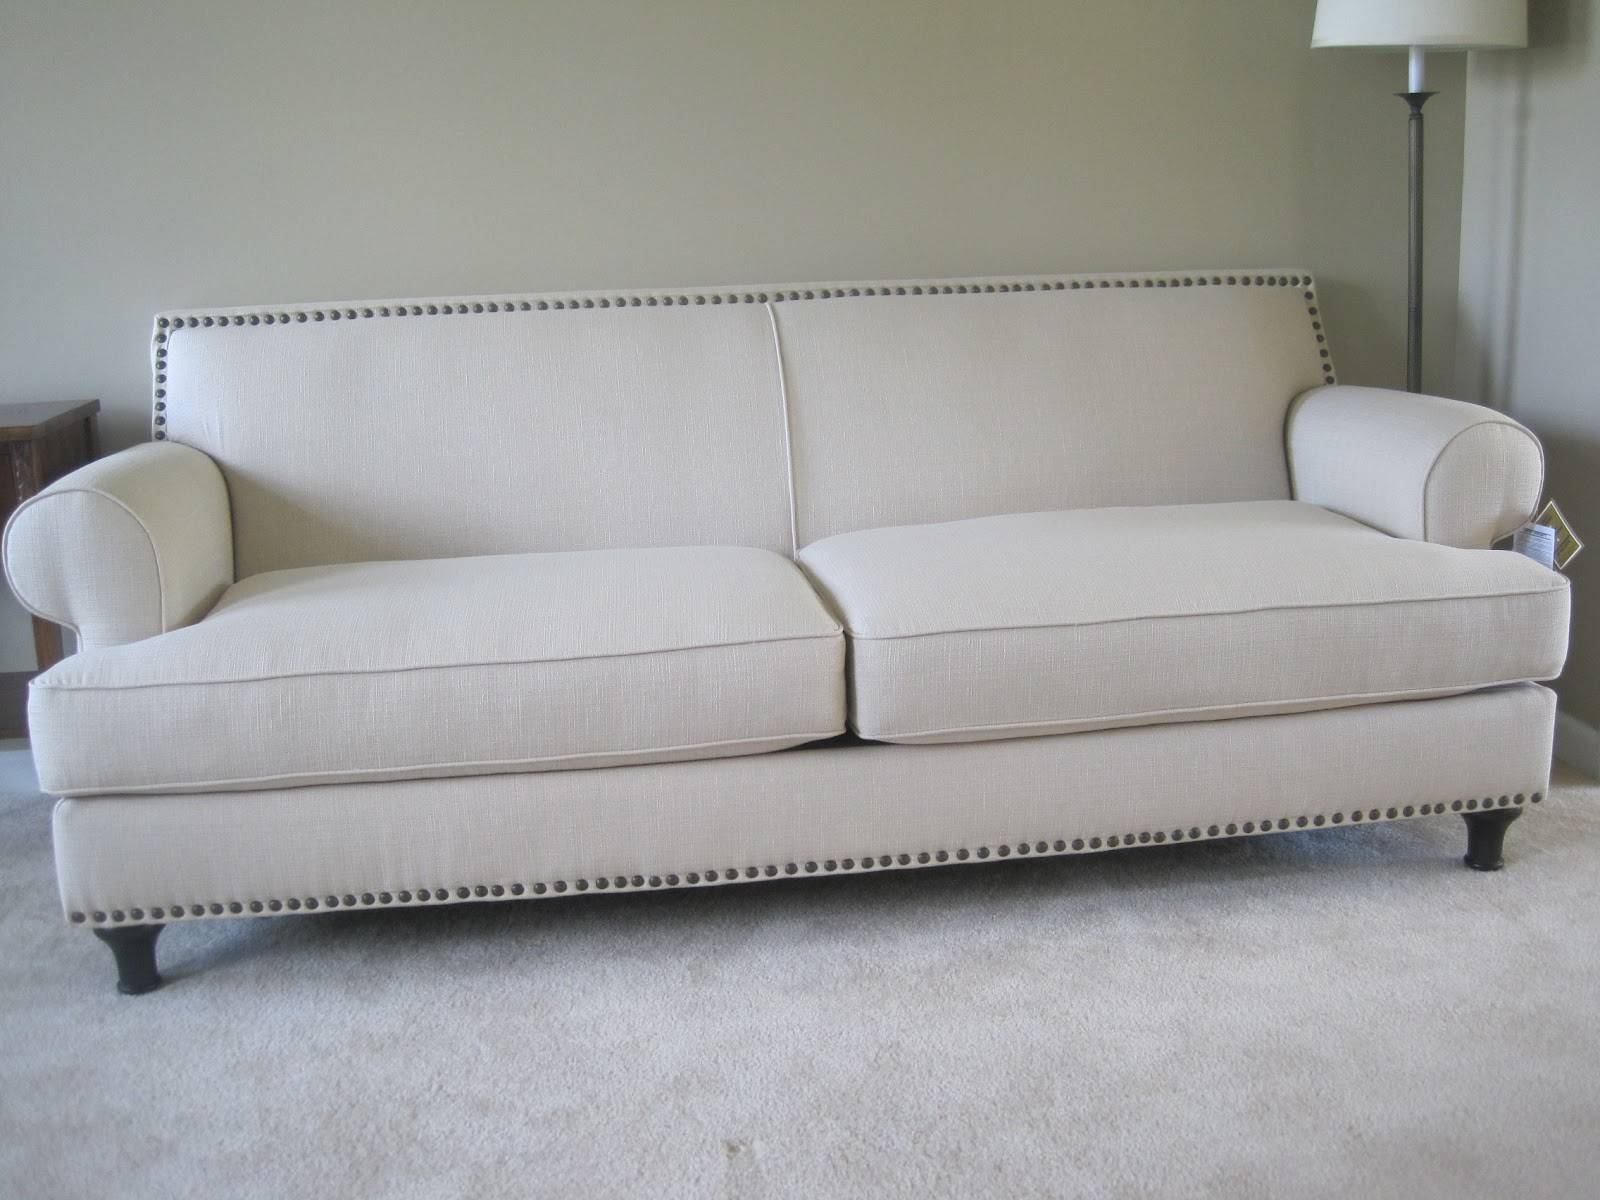 Designed To Dwell: So Fa-Ortunate! throughout Pier 1 Carmen Sofas (Image 8 of 15)